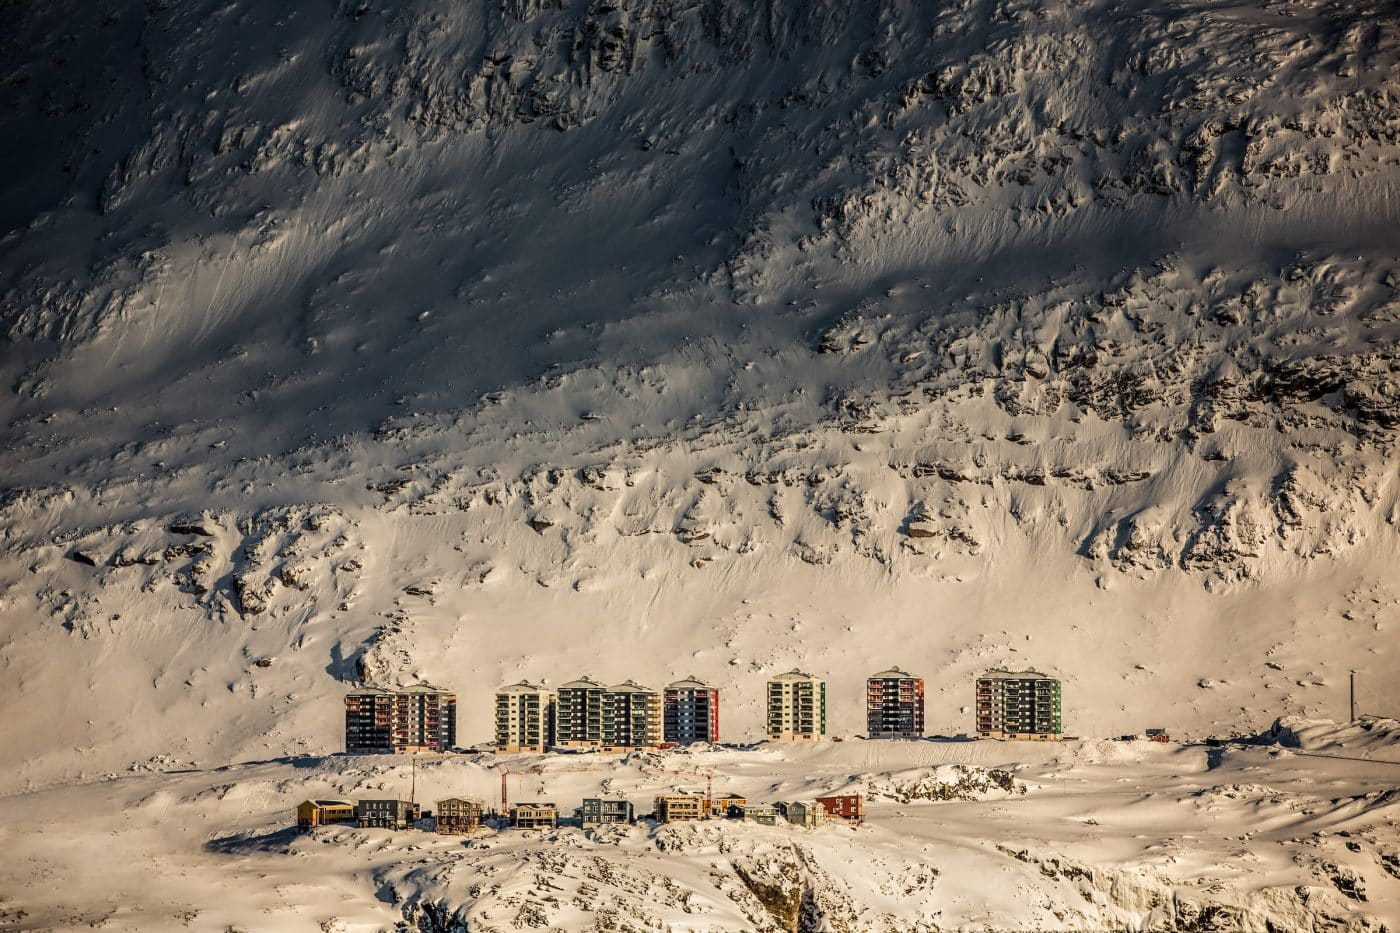 The Suloraq towers in Nuuk's suburb Qinngorput nestled below the mountain Ukkusissaq in Greenland, by Mads Pihl